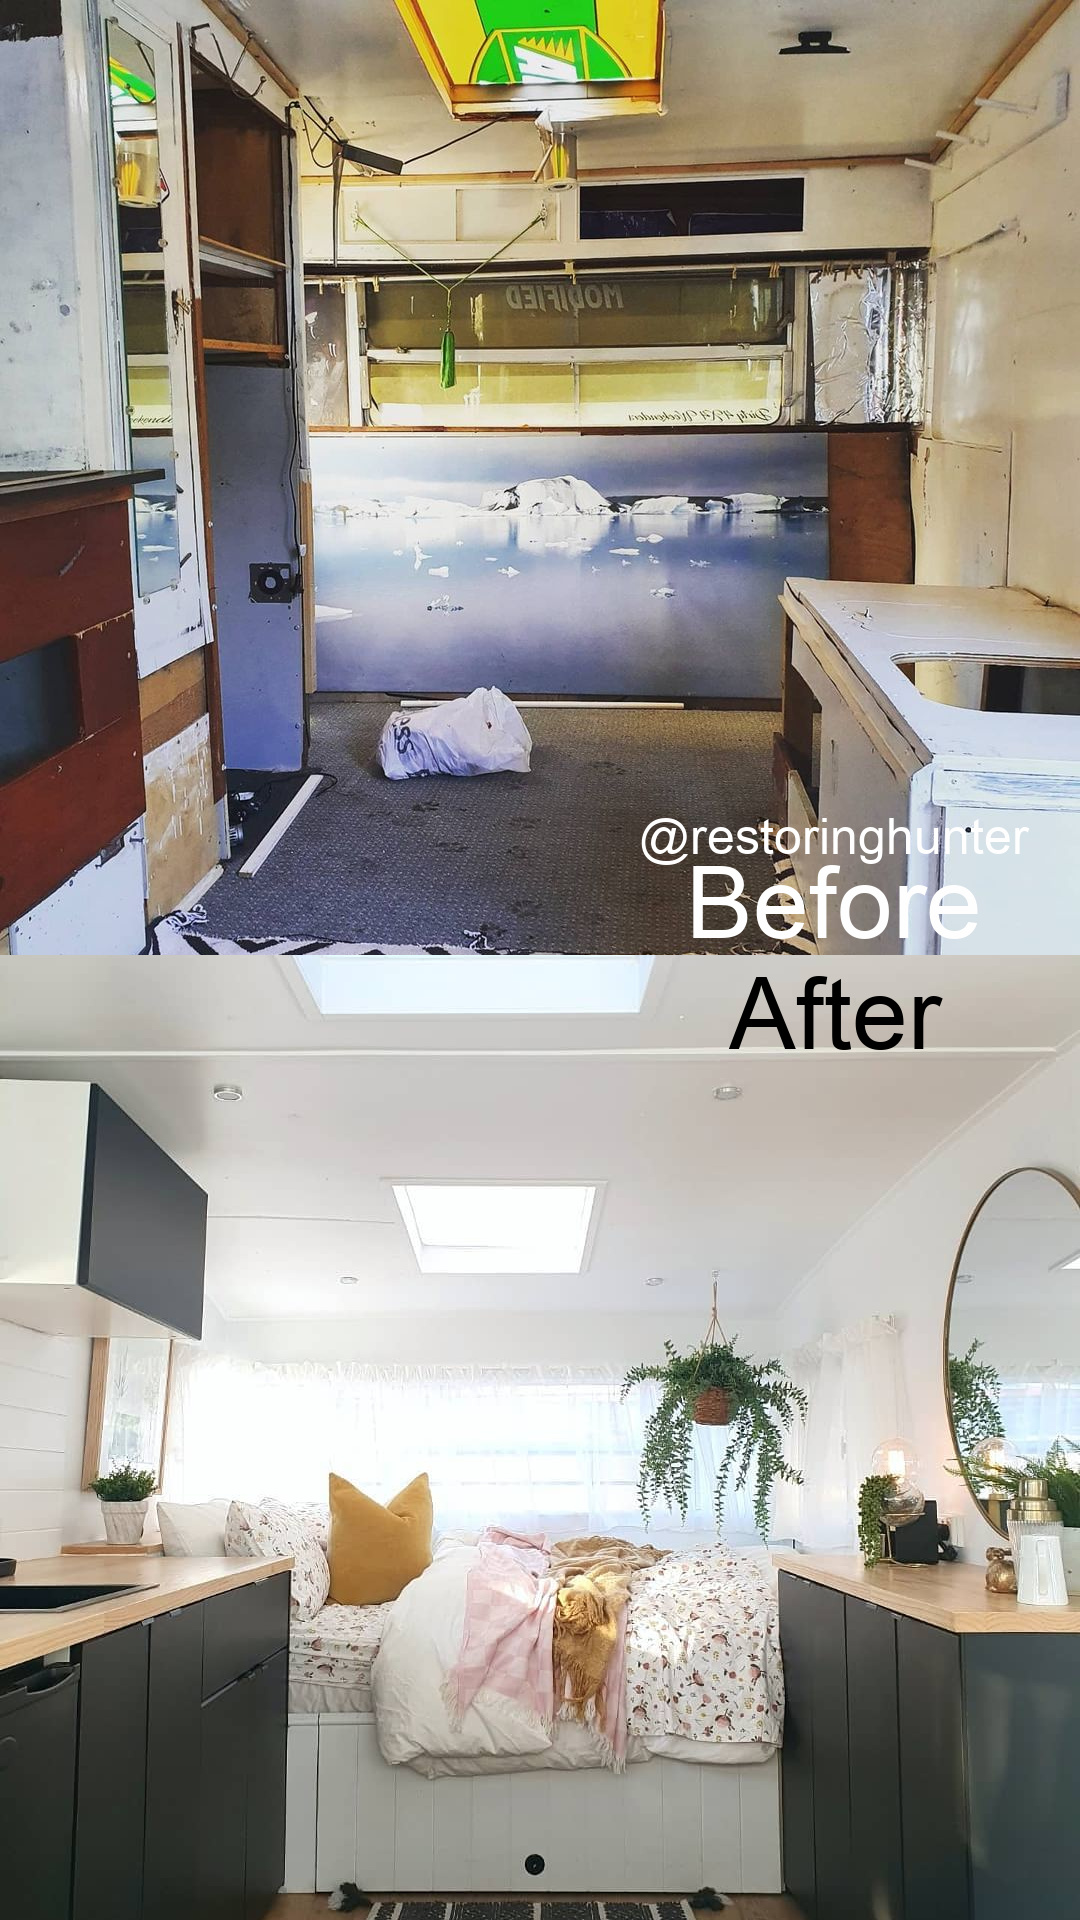 Before and after photos of the interior of a renovated vintage caravan.